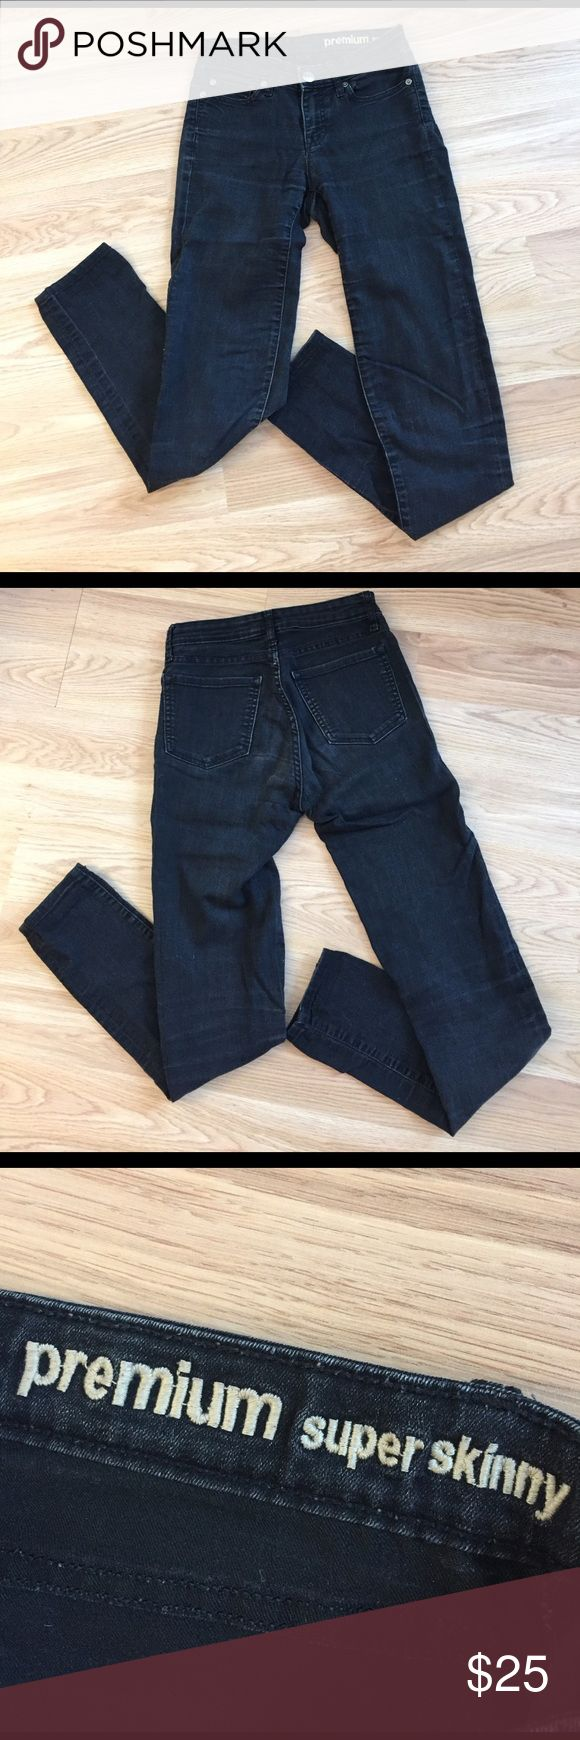 GAP Premium Super Skinny black jeans GAP Premium Super Skinny black jeans. Dark silver hardware. Incredibly stretchy and comfortable. Not completely black - have a more faded black appearance. Size 0/25R. GAP Jeans Skinny